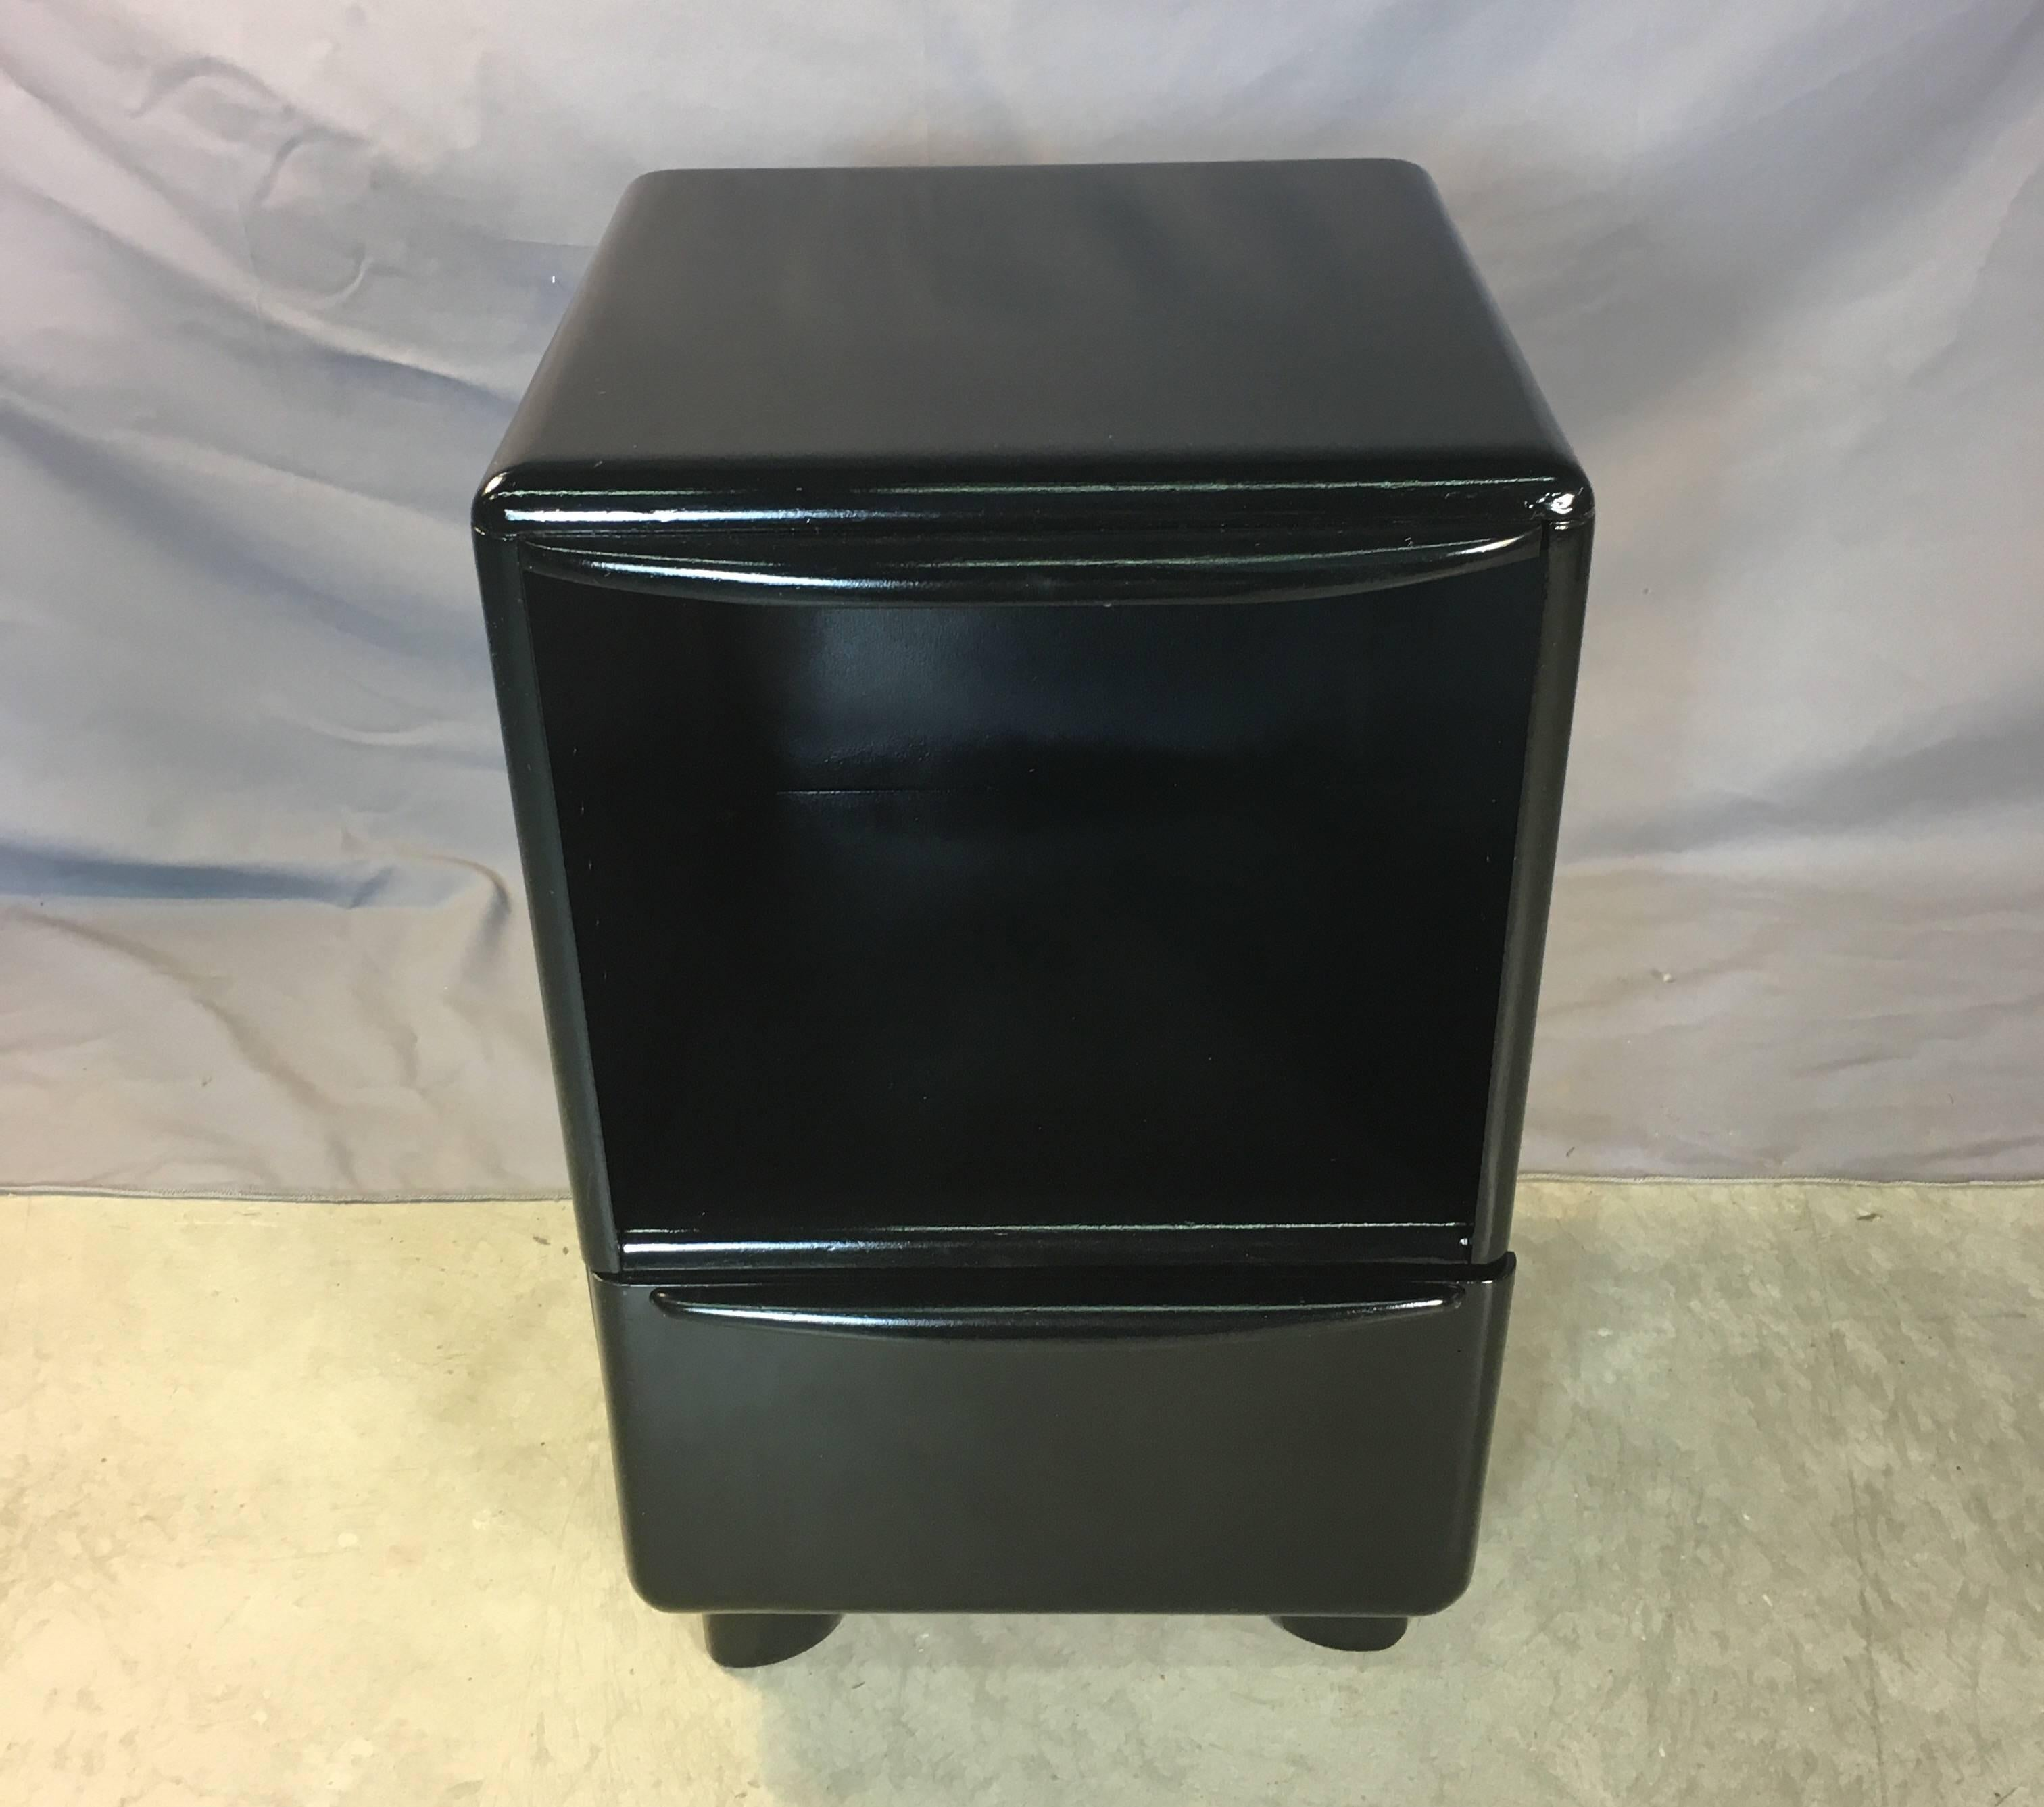 Vintage Heywood Wakefield Refinished In Black Lacquer Single Nightstand  With A Drawer For Storage. Newly